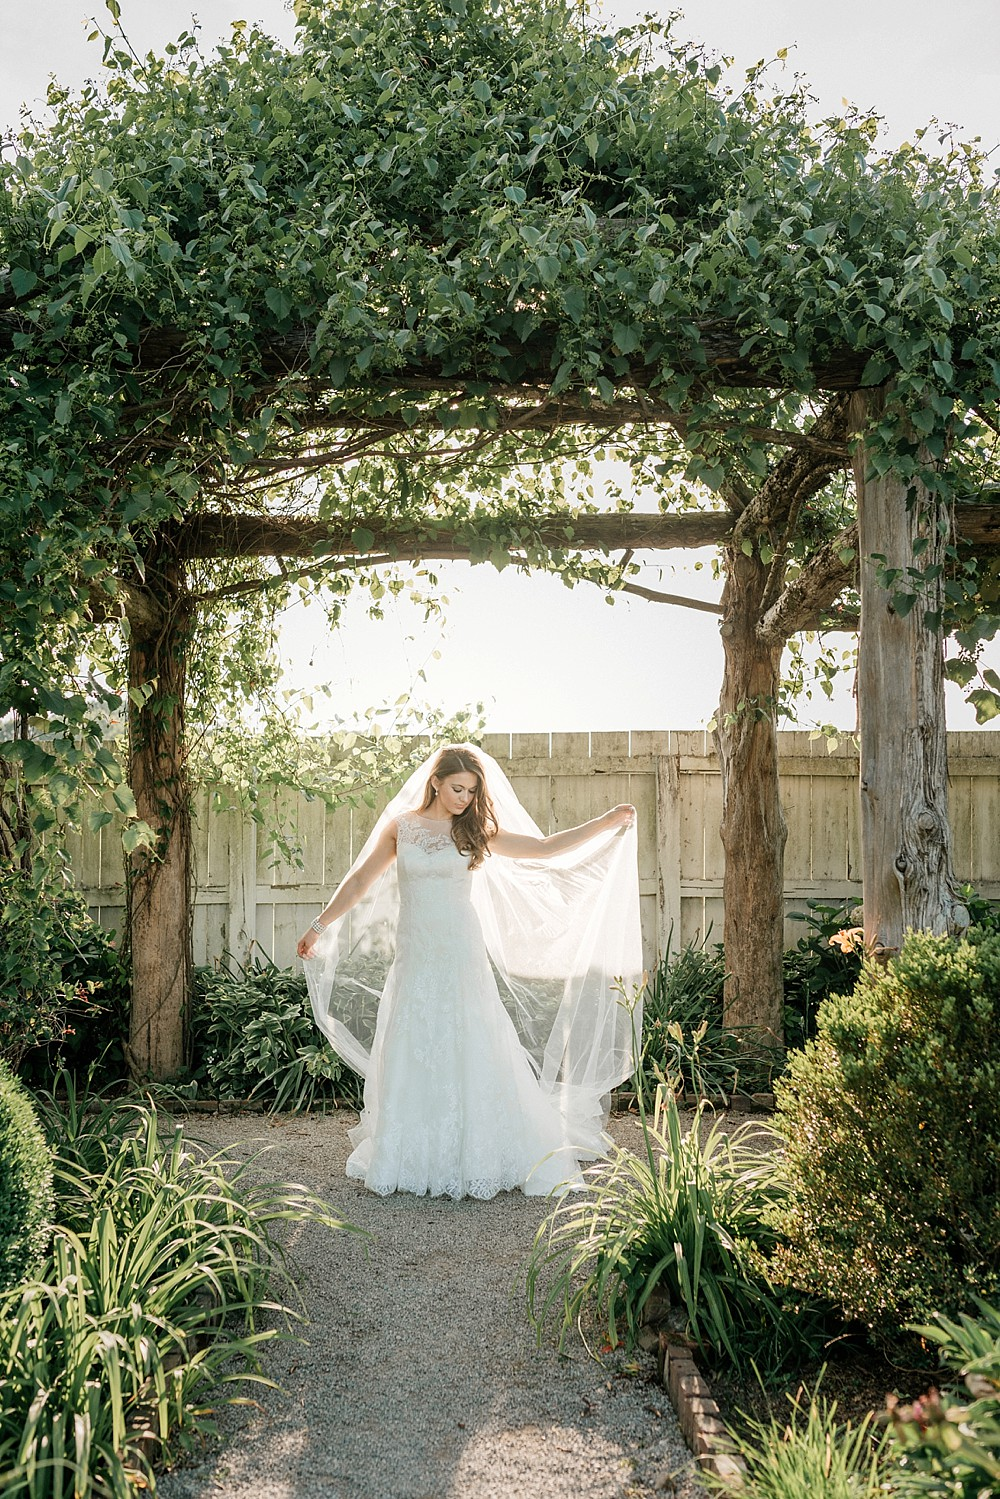 Bridal Portrait at Carnton Plantation in Franklin TN. Simple, Beautiful. Bride Smiling. Beauty and grace. Sun shining through. Backlit.